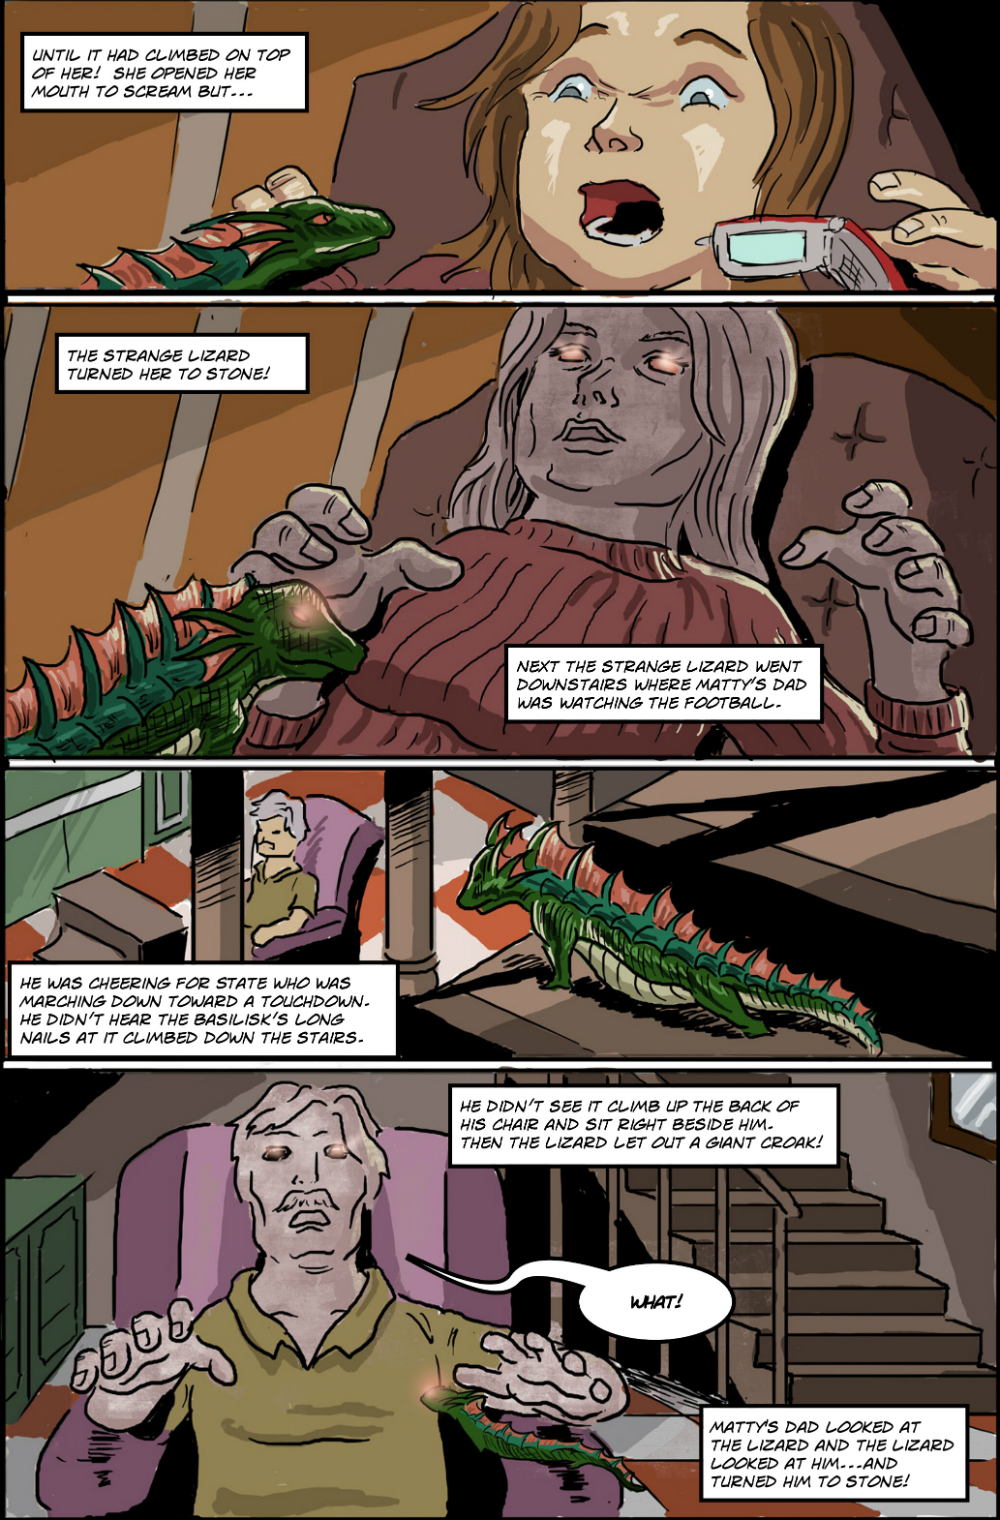 BASILISK IN THE HOUSE page 4 - story 18 in The Book of Lies